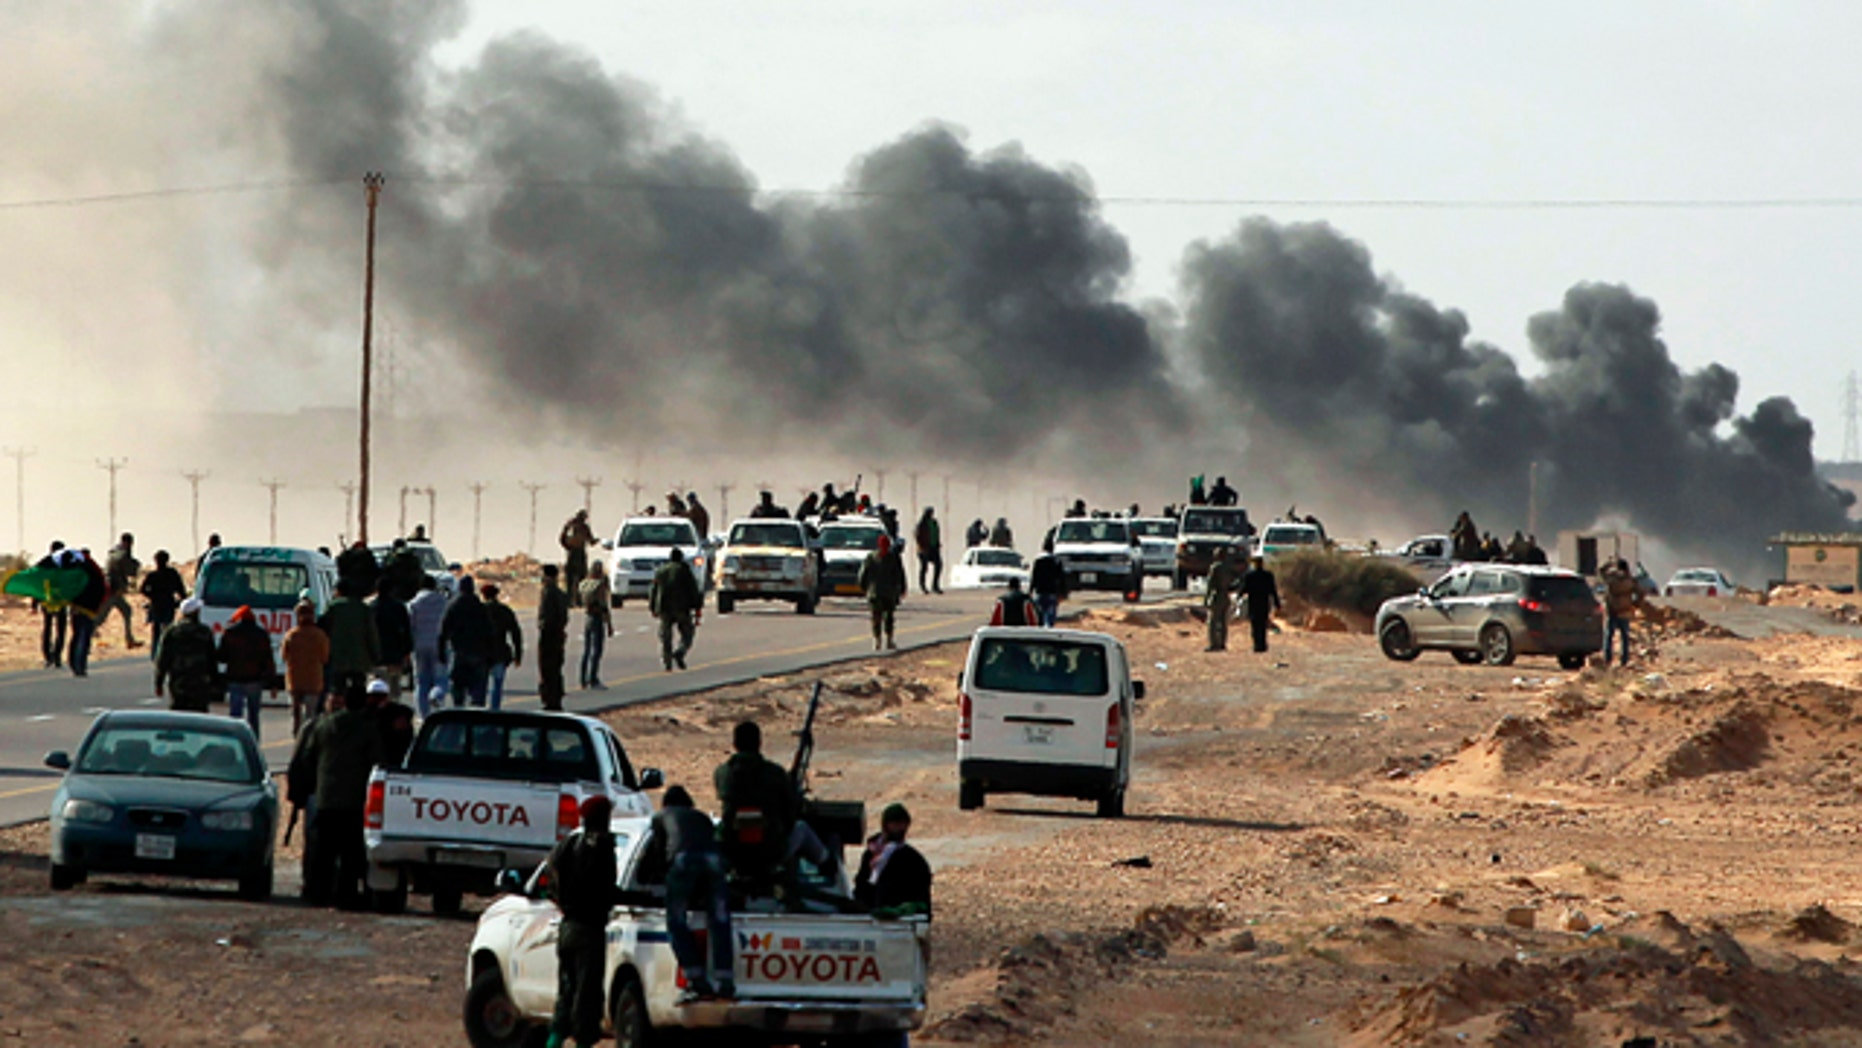 Smoke rises from heavy shelling as Libyan rebels who are part of the forces against Libyan leader Moammar Gadhafi retreat during a battle with Gadhafi's troops, outside the town of Bin Jawwad, eastern Libya, Sunday, March 6, 2011